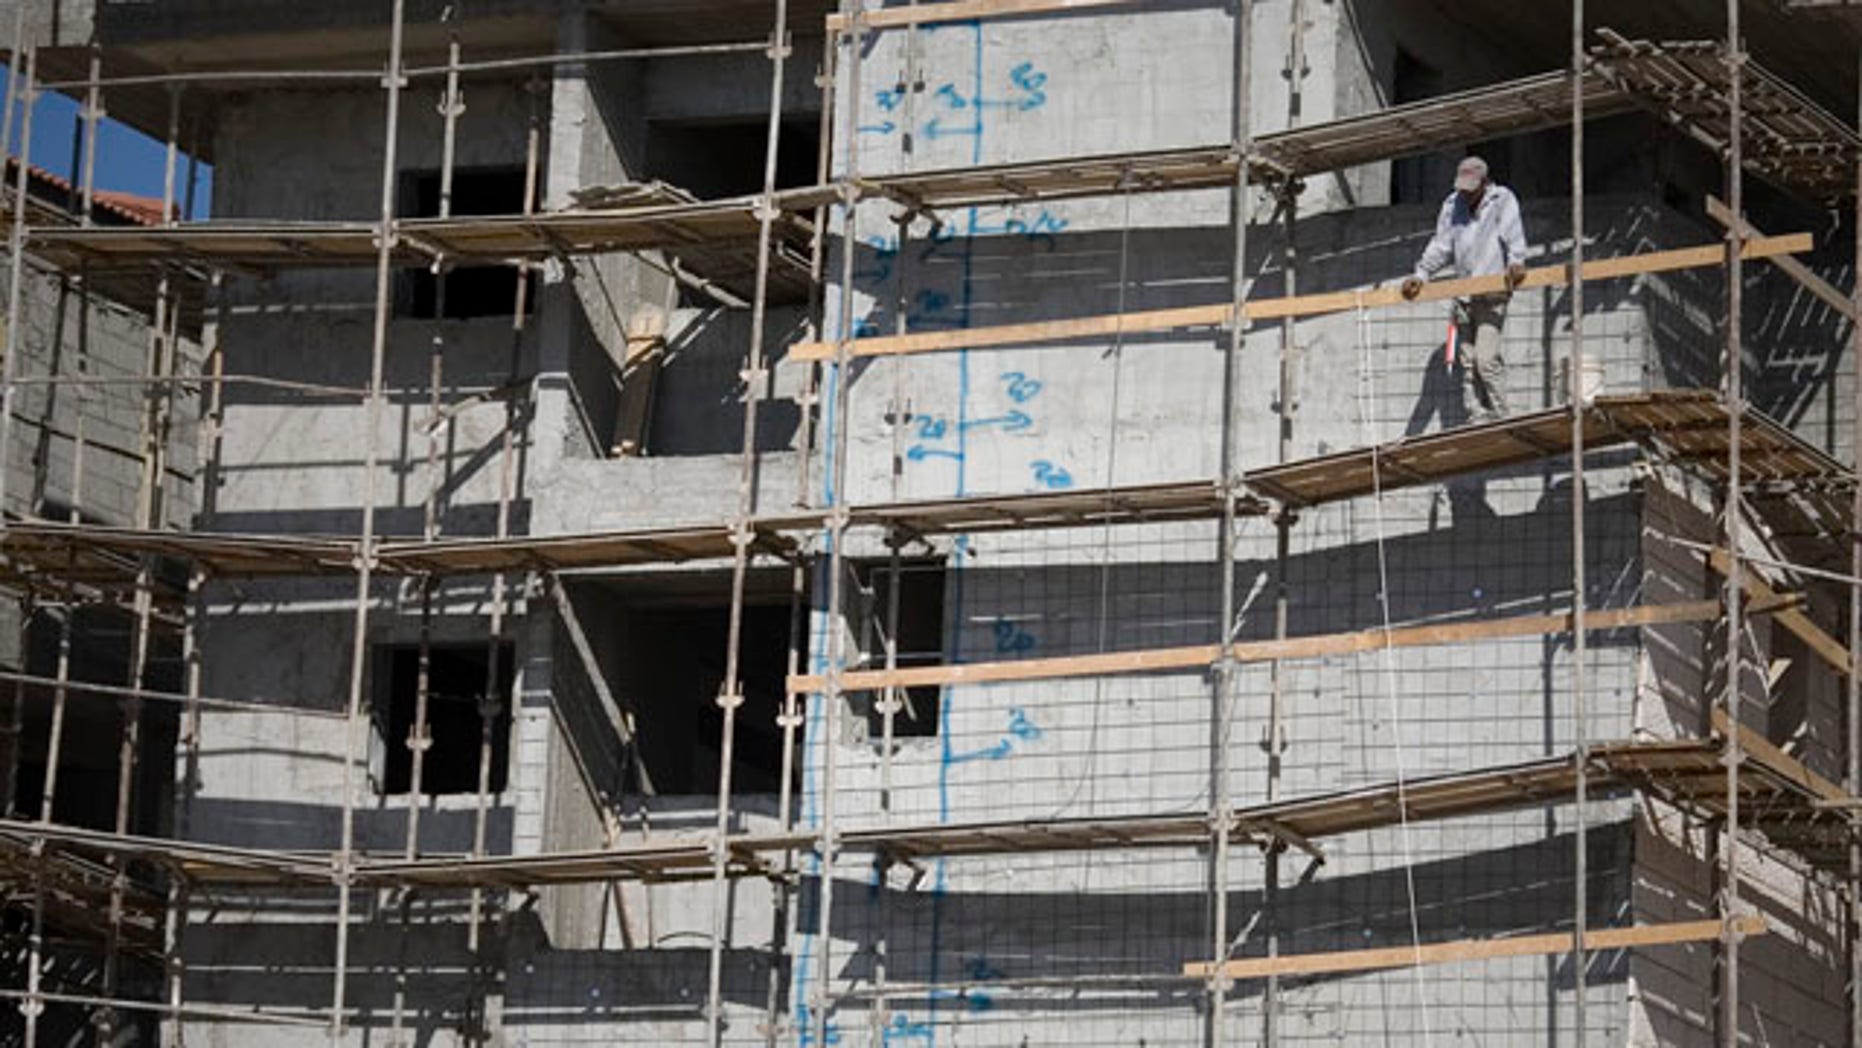 Nov. 9: A construction worker looks on at a site in the West Bank Jewish settlement of Ariel. The official Palestinian news agency said the Palestinian president wants a U.N. Security Council session to discuss such Israeli settlement construction.